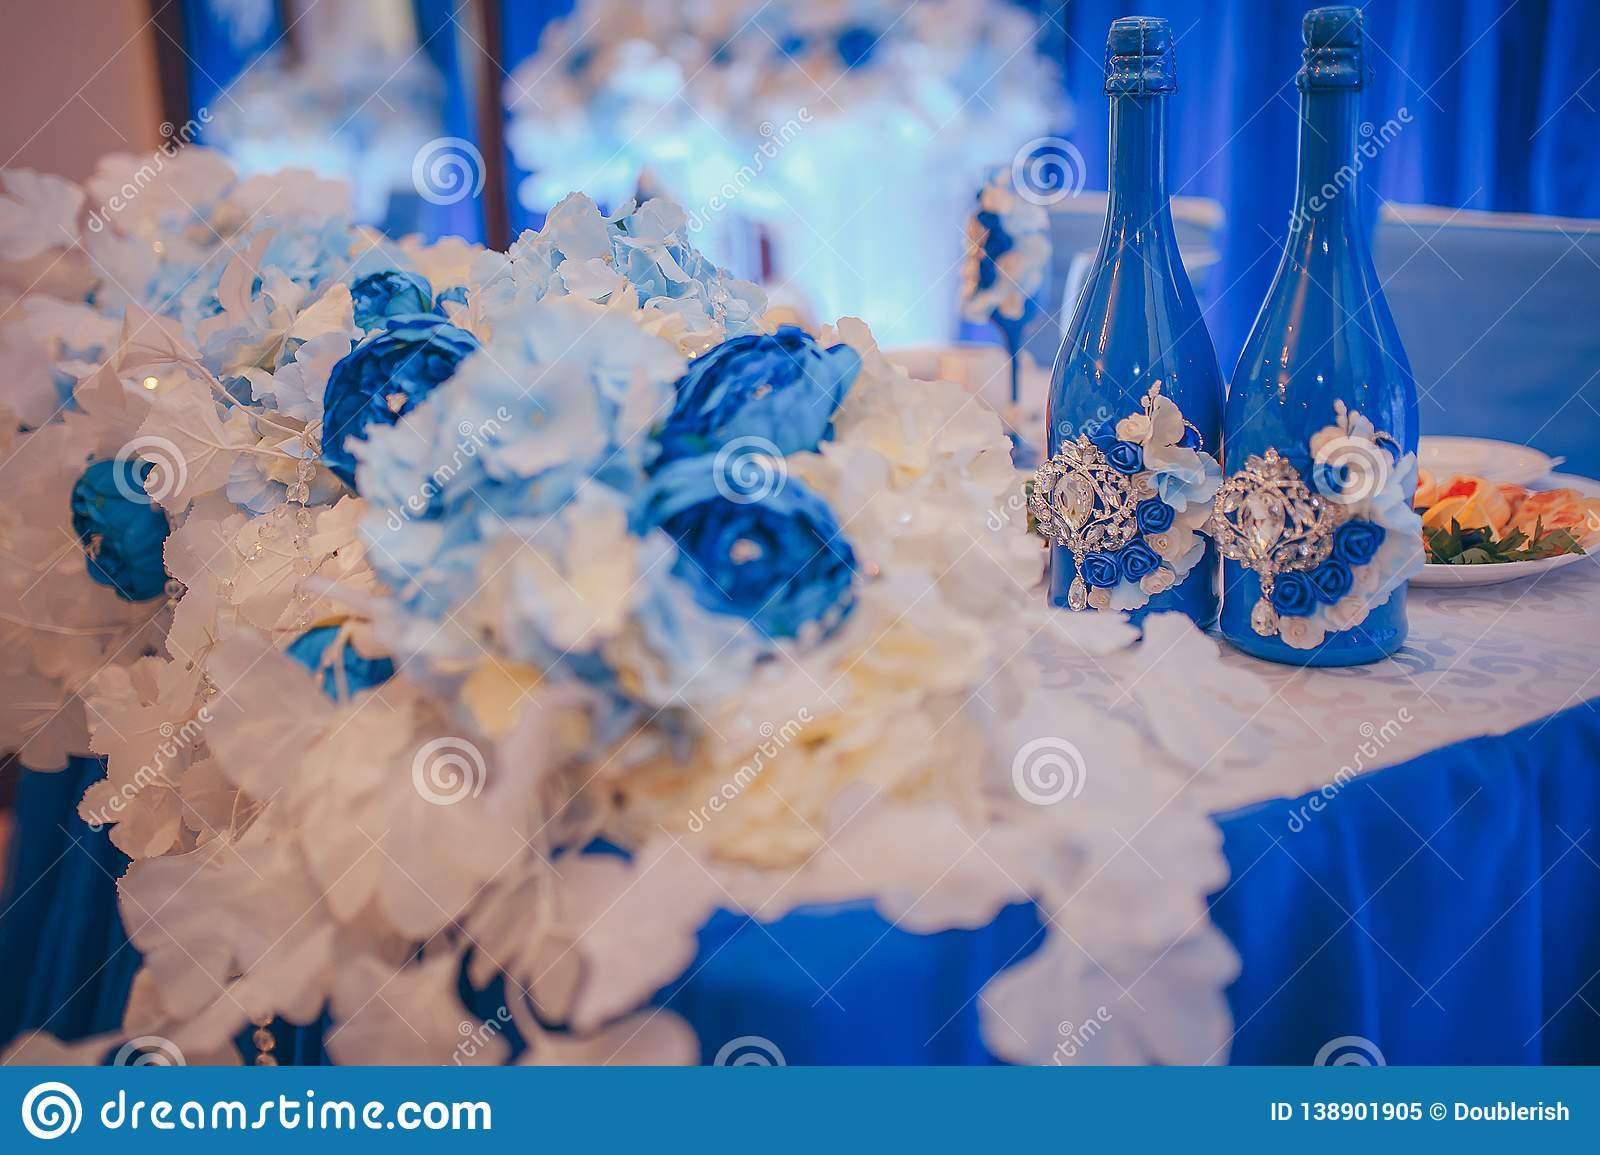 Wedding Table Decorations Blue Champagne Bottles With